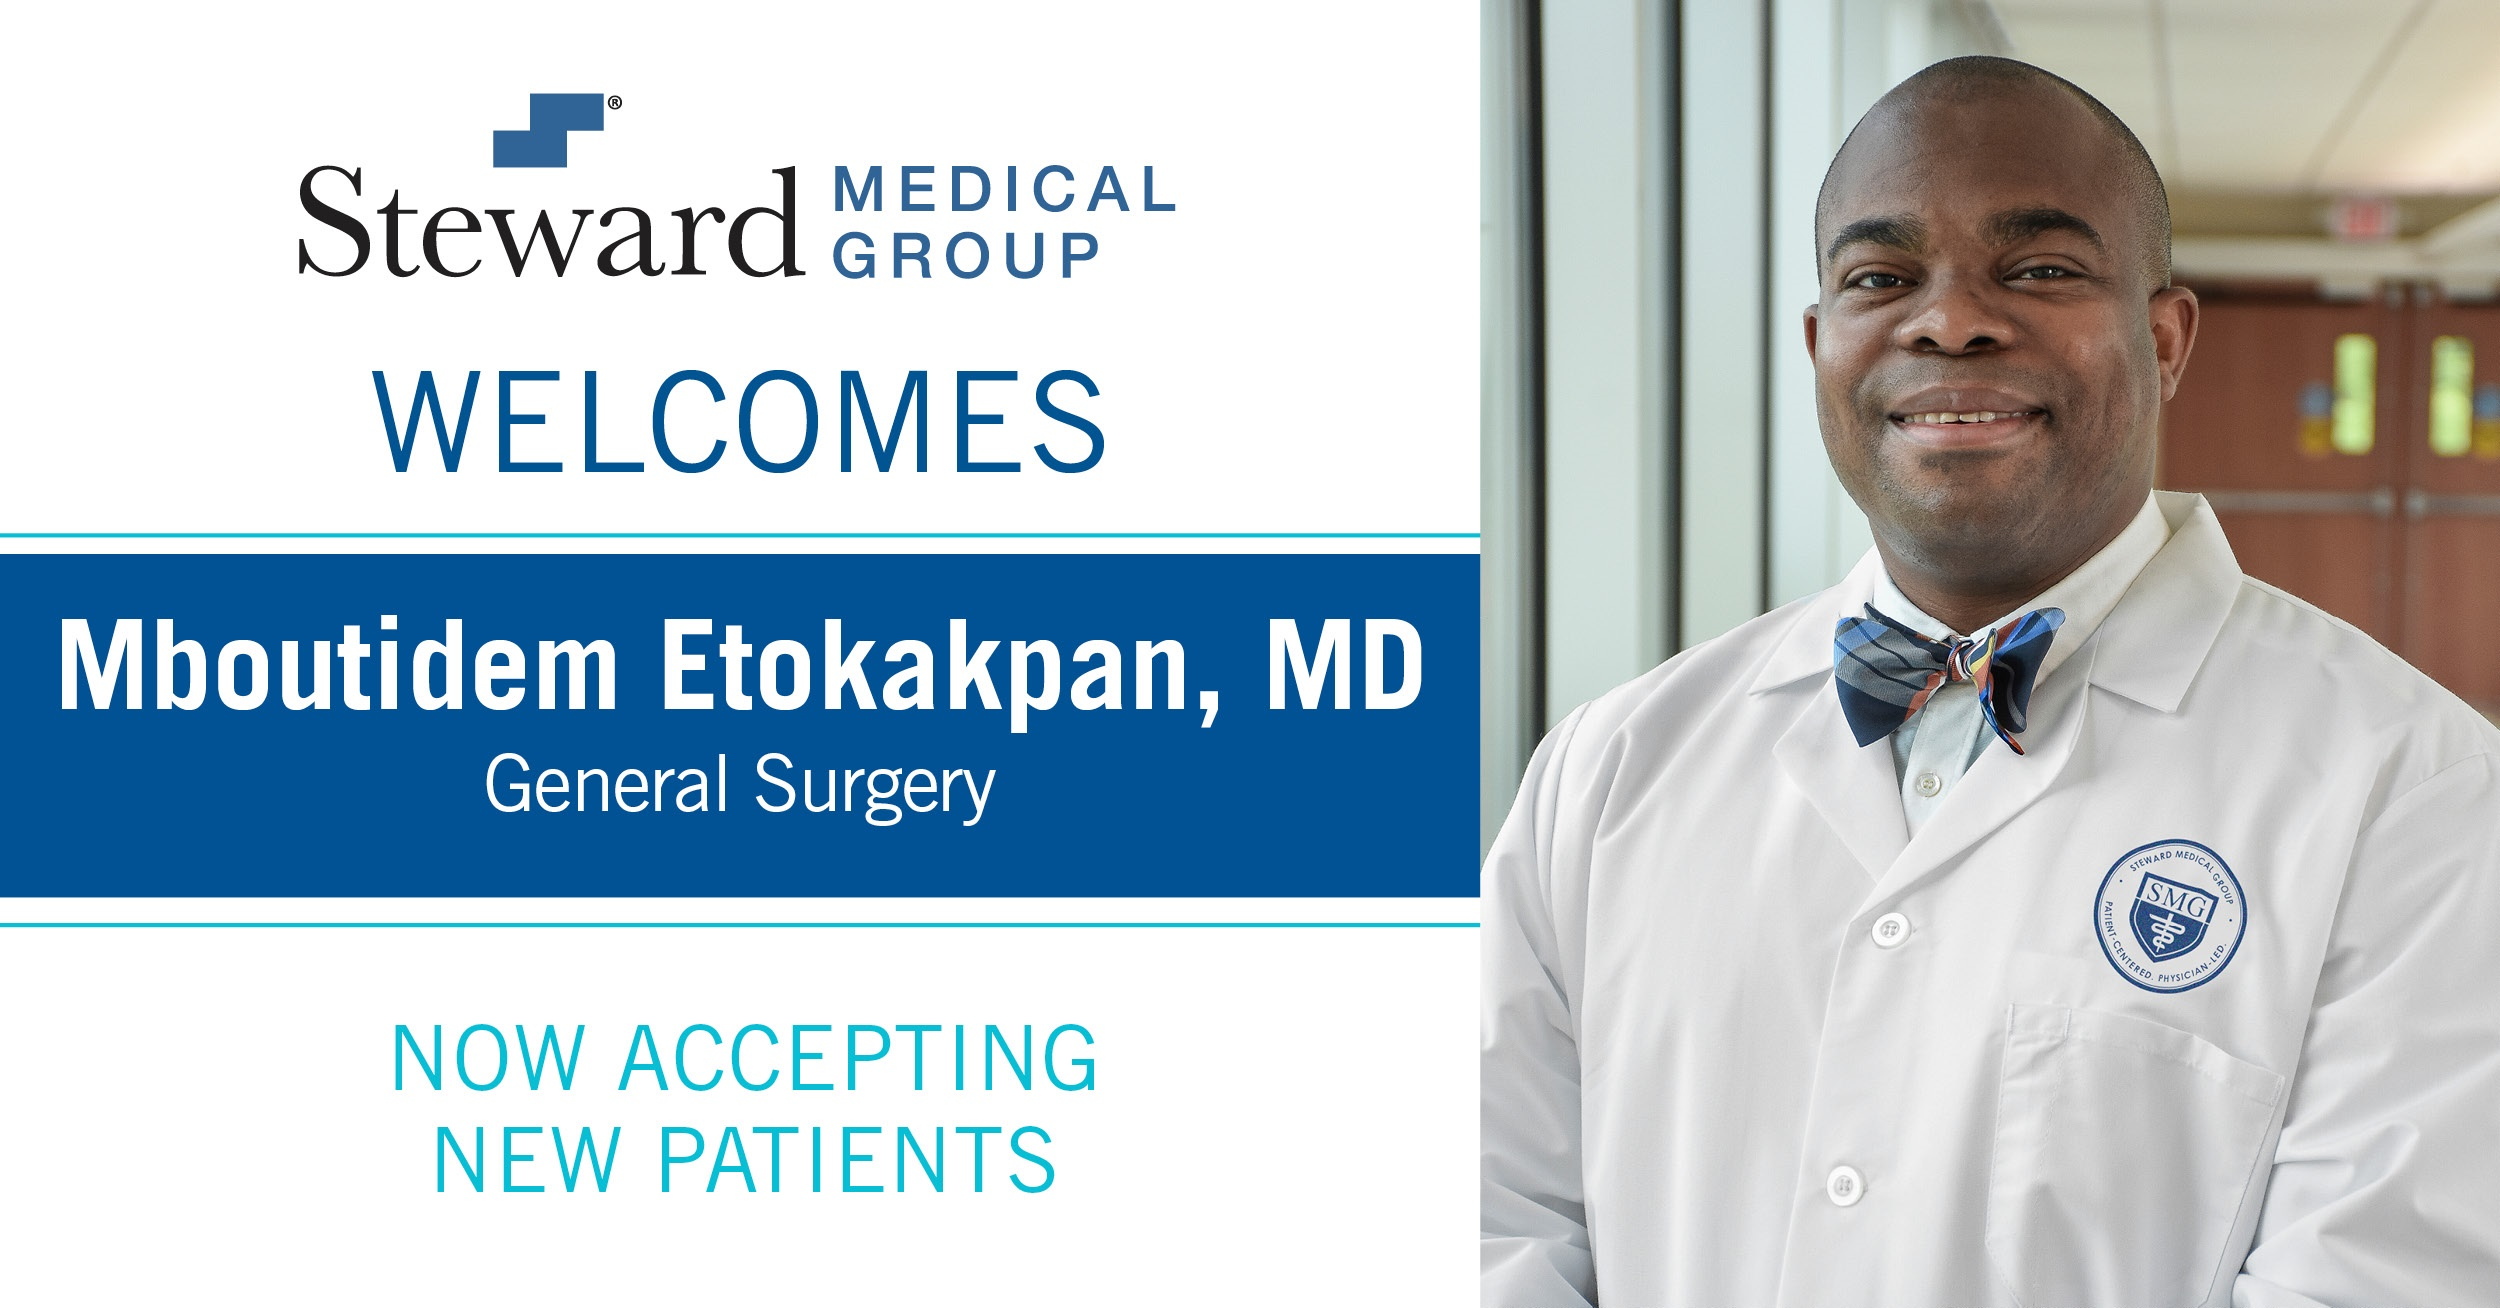 Mboutidem Etokakpan, MD, General Surgeon